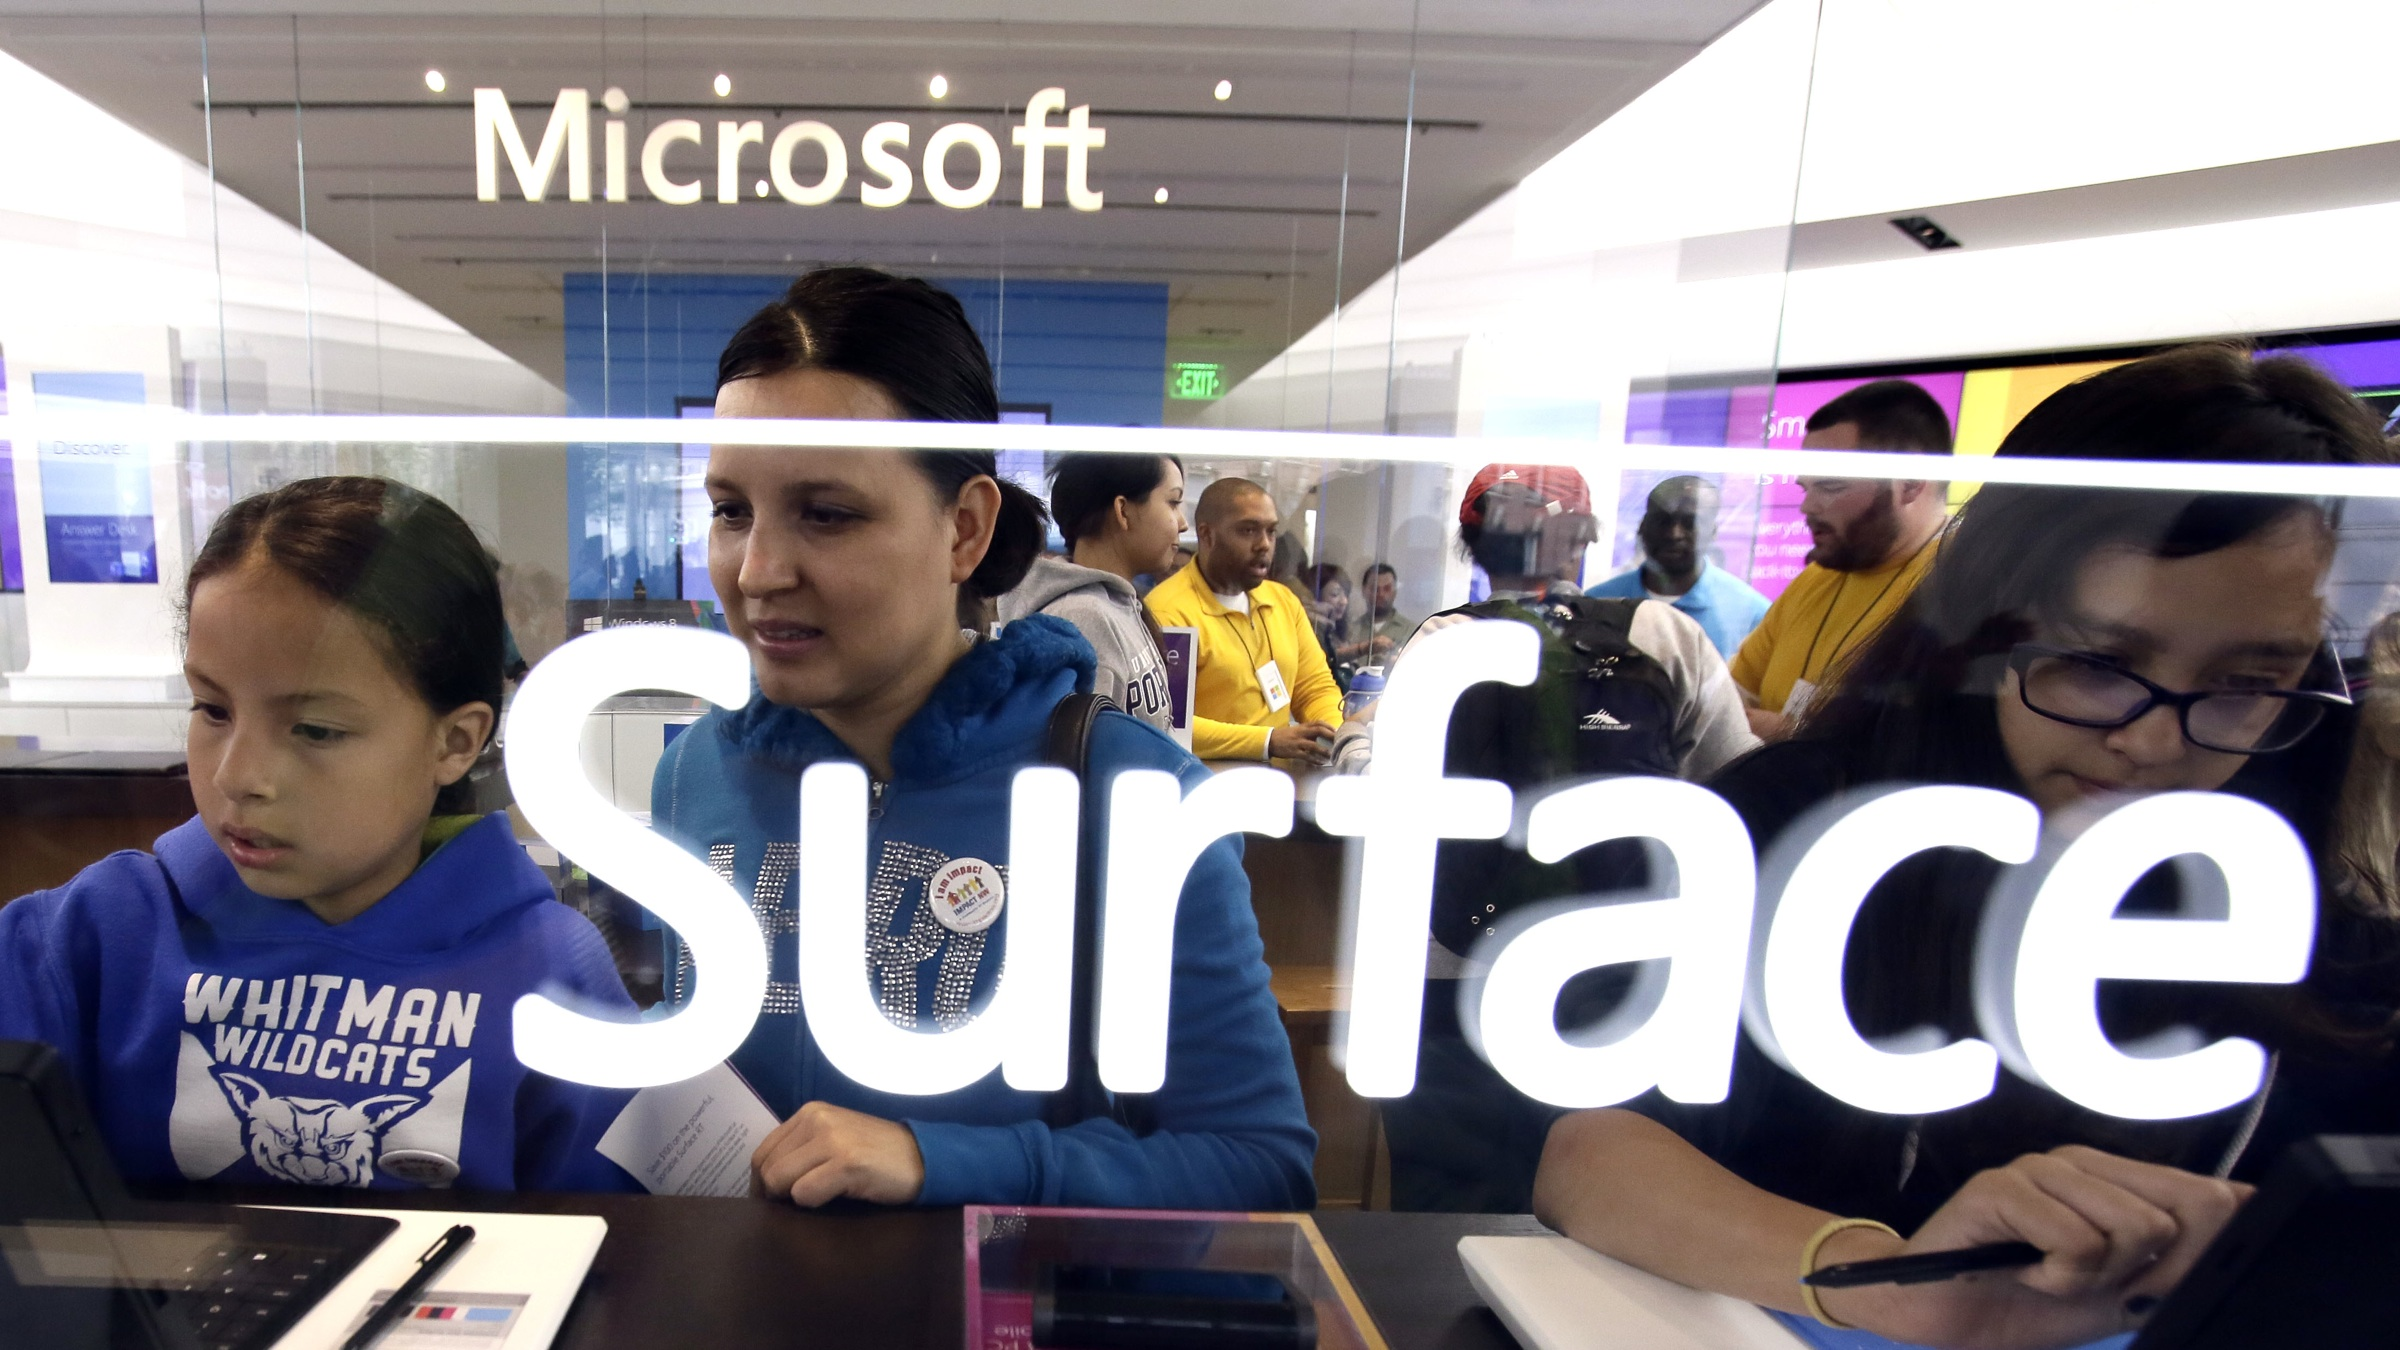 Natalie Andrade, left, 8, plays with a computer as mother Enedina Barrajas watches during the grand opening of a Microsoft retail store in downtown Portland, Ore., Thursday, June 20, 2013.(AP Photo/Don Ryan)